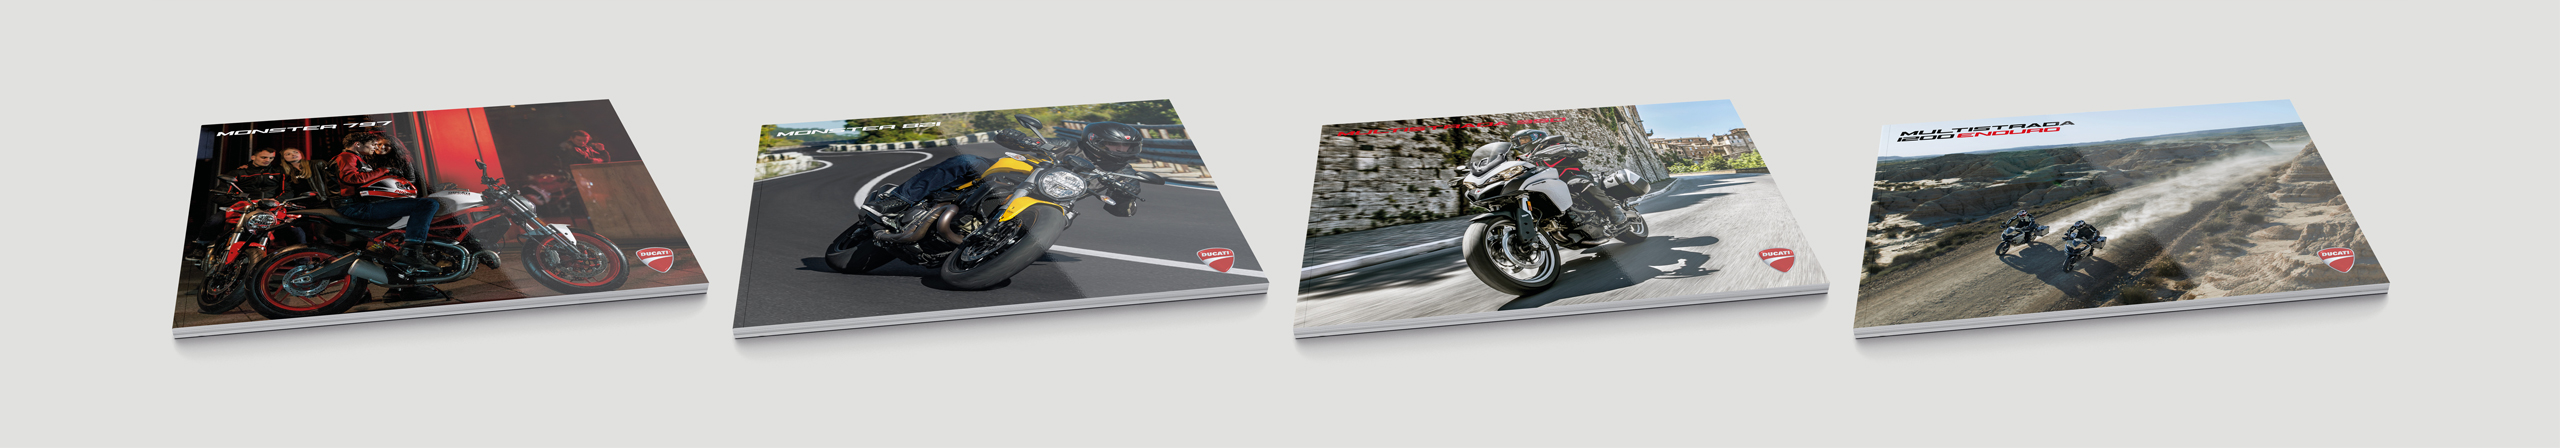 Ducati Brochure covers Likecube